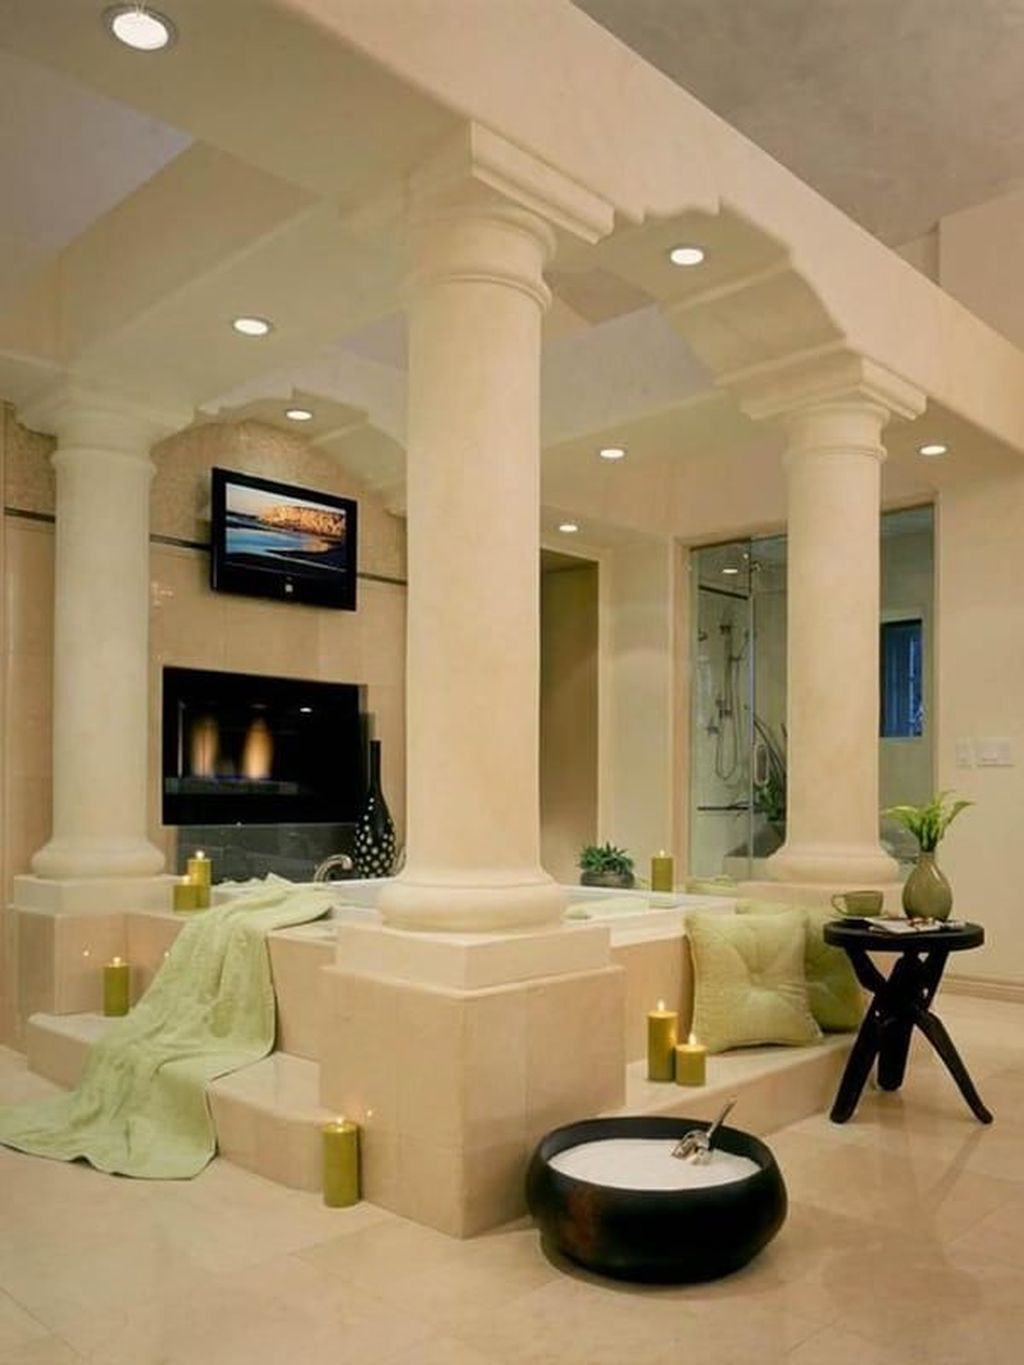 The Best Romantic Bathroom Ideas Perfect For Valentines Day 28